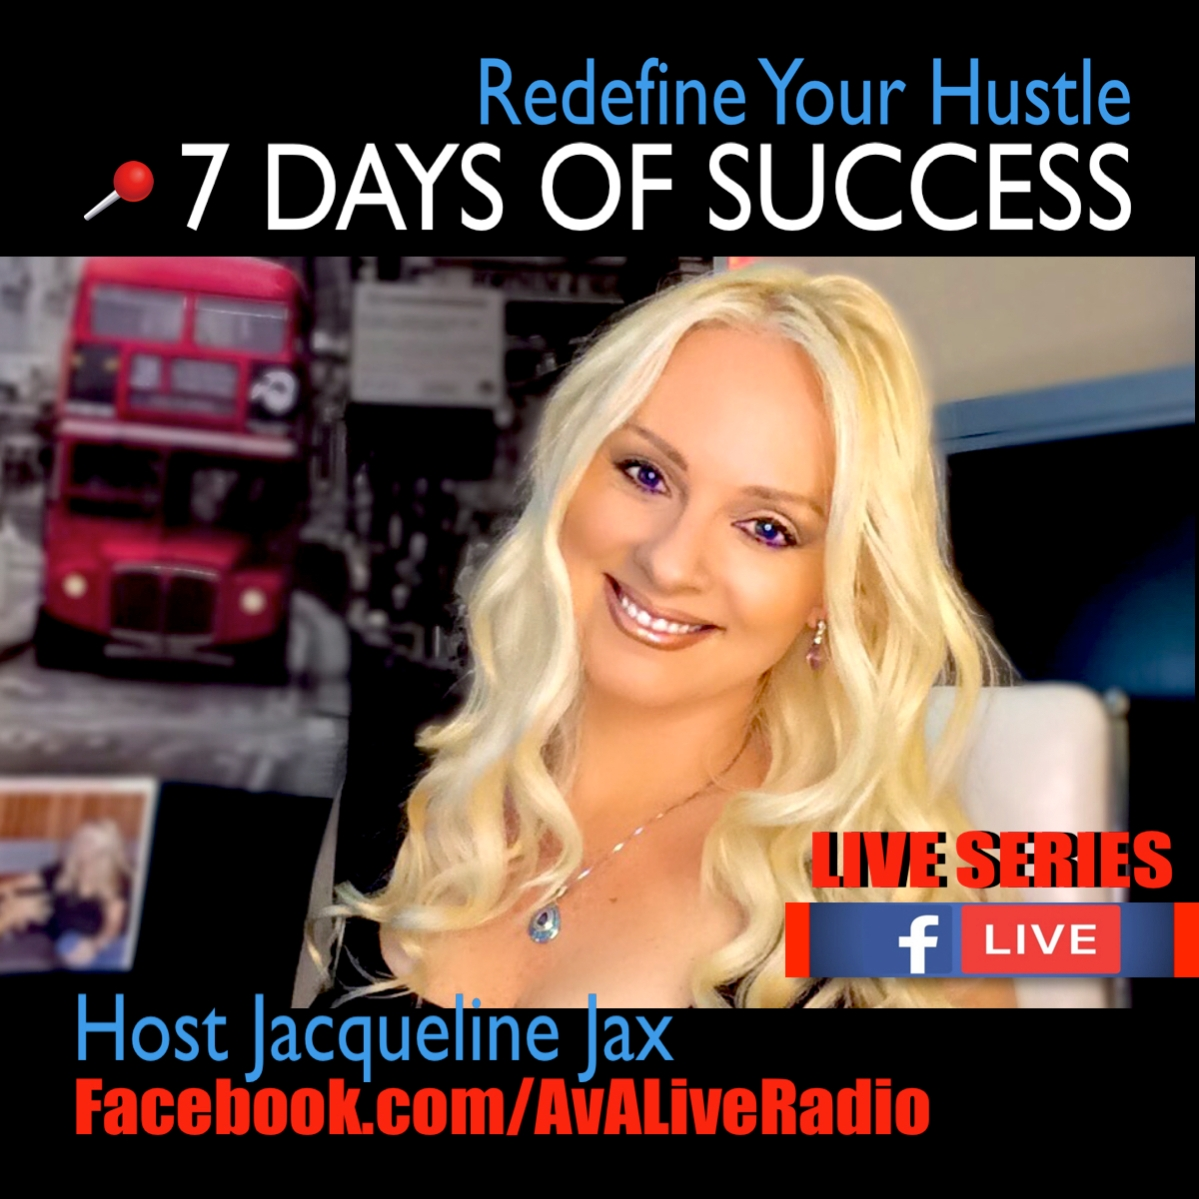 7 Days of Success Series